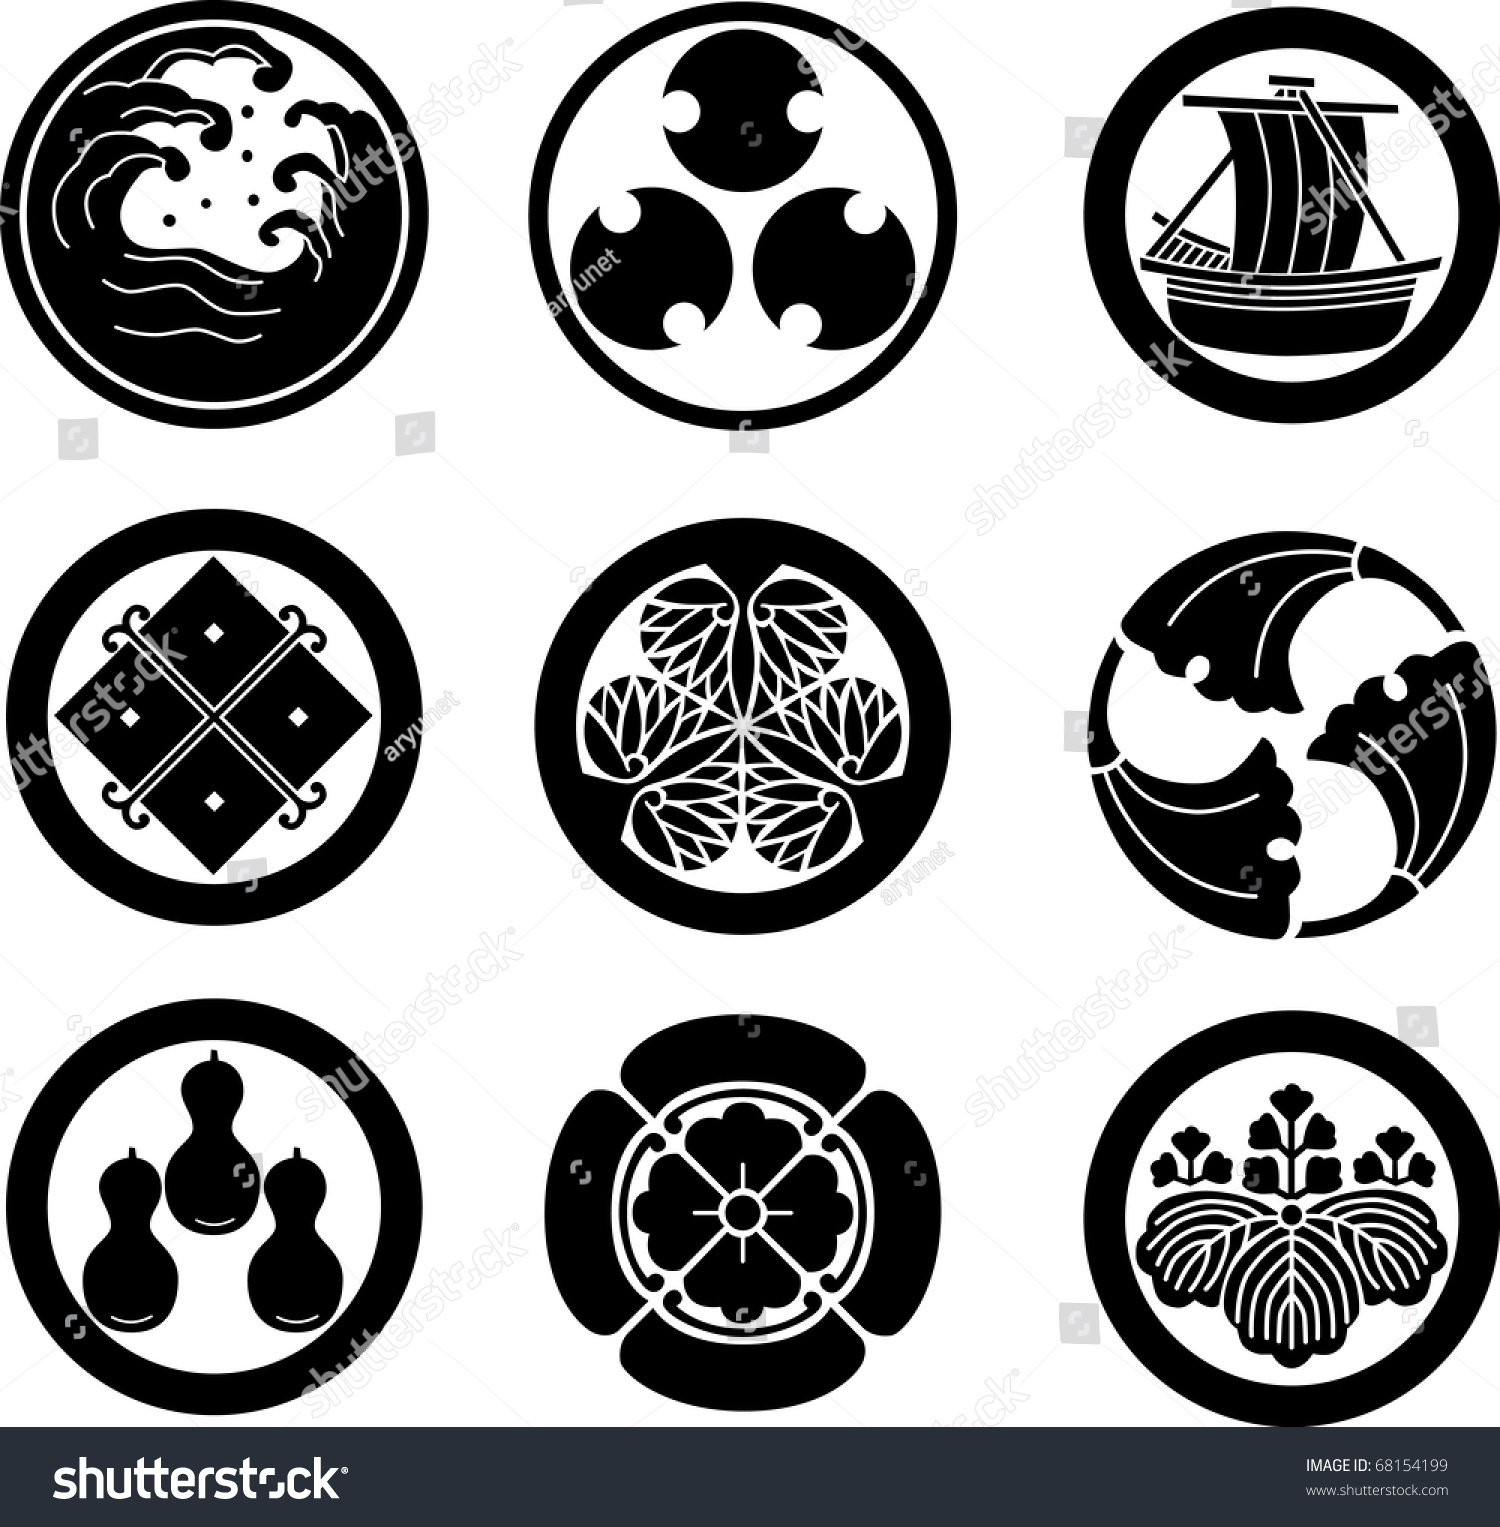 Japanese Family Crests Vector Stock Vector Royalty Free 68154199